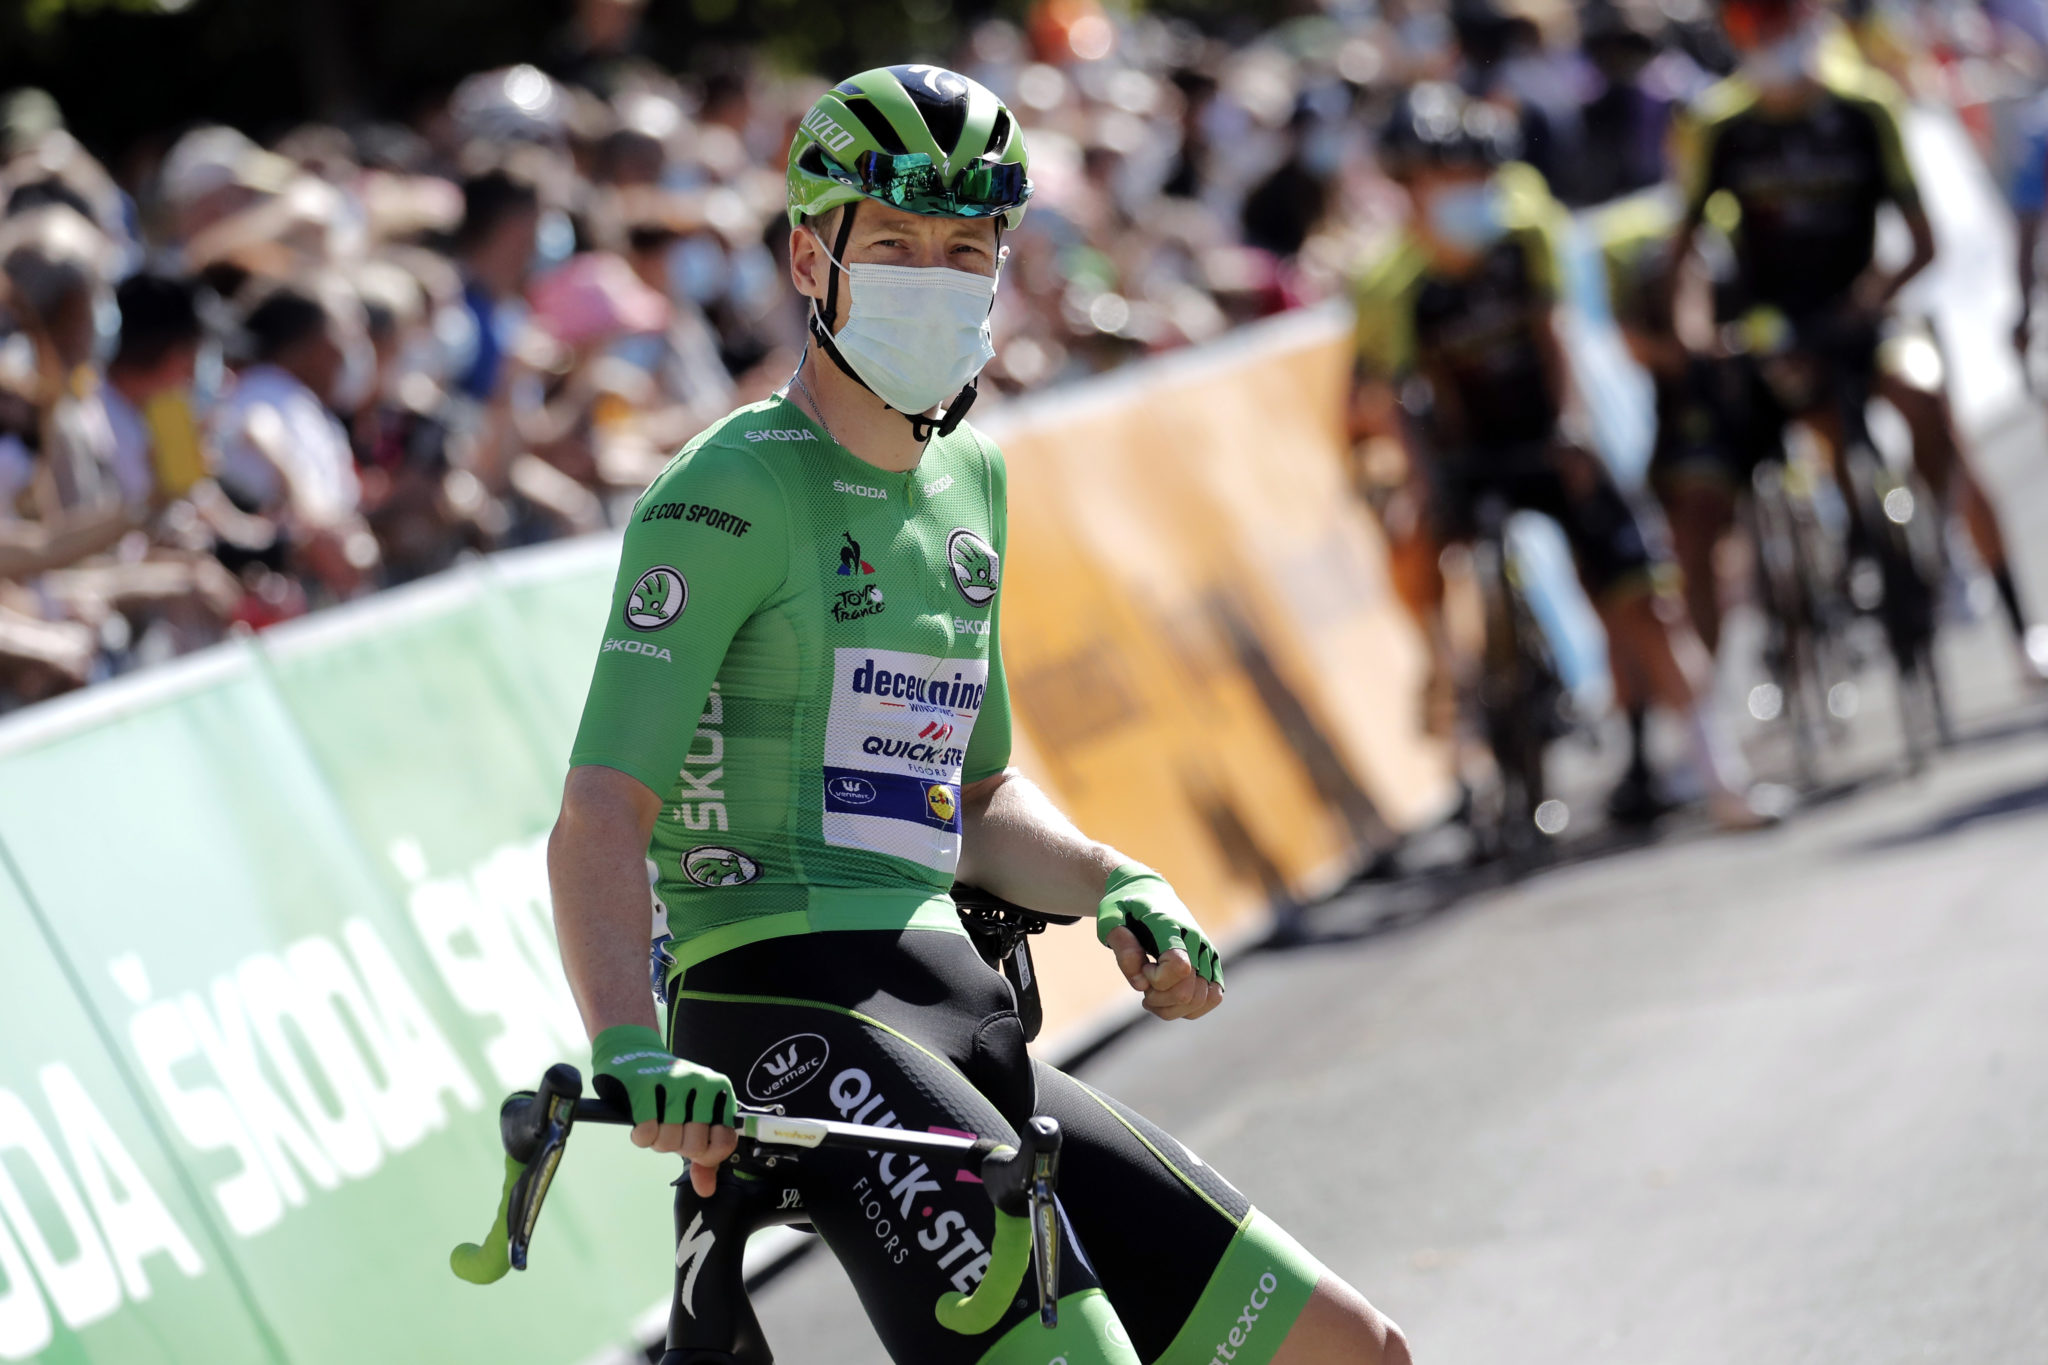 Sam Bennett pictured in the green jersey ahead of stage 13 of the Tour de France